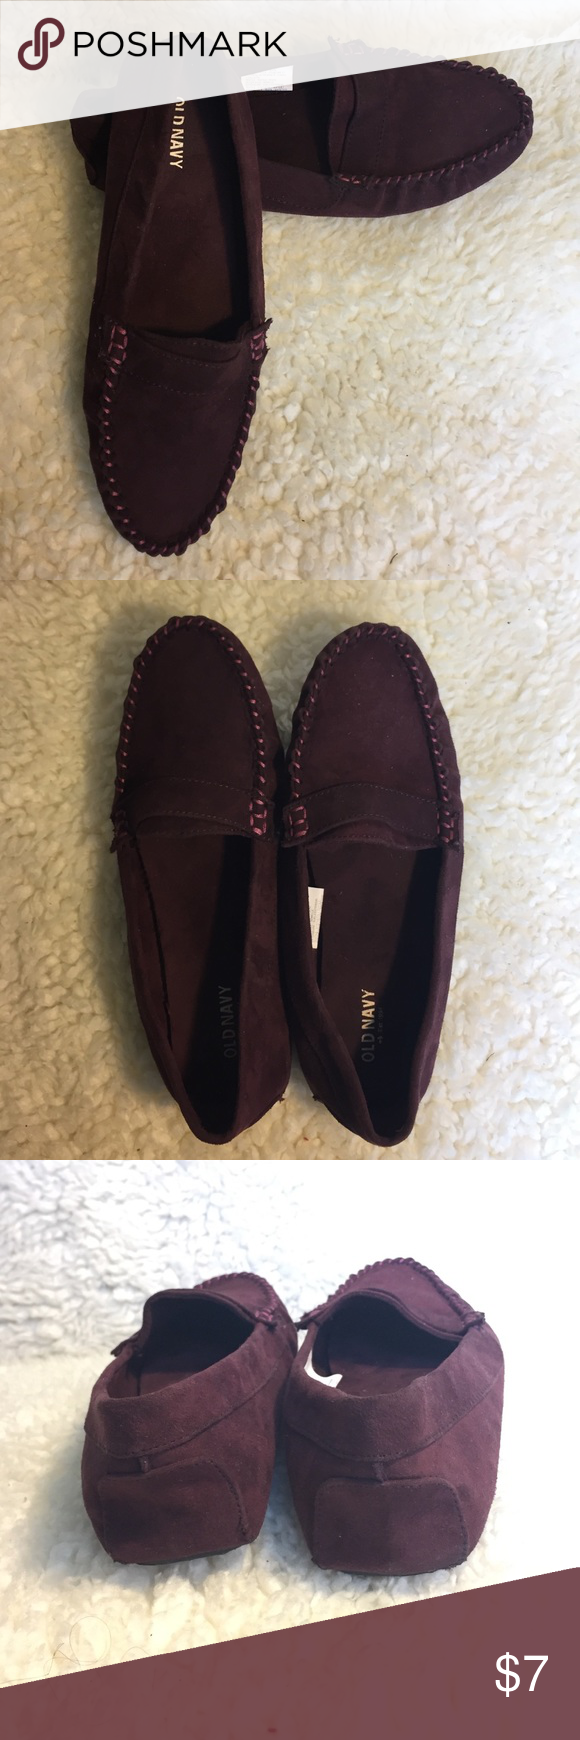 Maroon slip ons Loving the maroon color! Worn at least 3 times. Have a bright pink thread color on the sides. Grips on the bottom to not slip! Old Navy Shoes Flats & Loafers